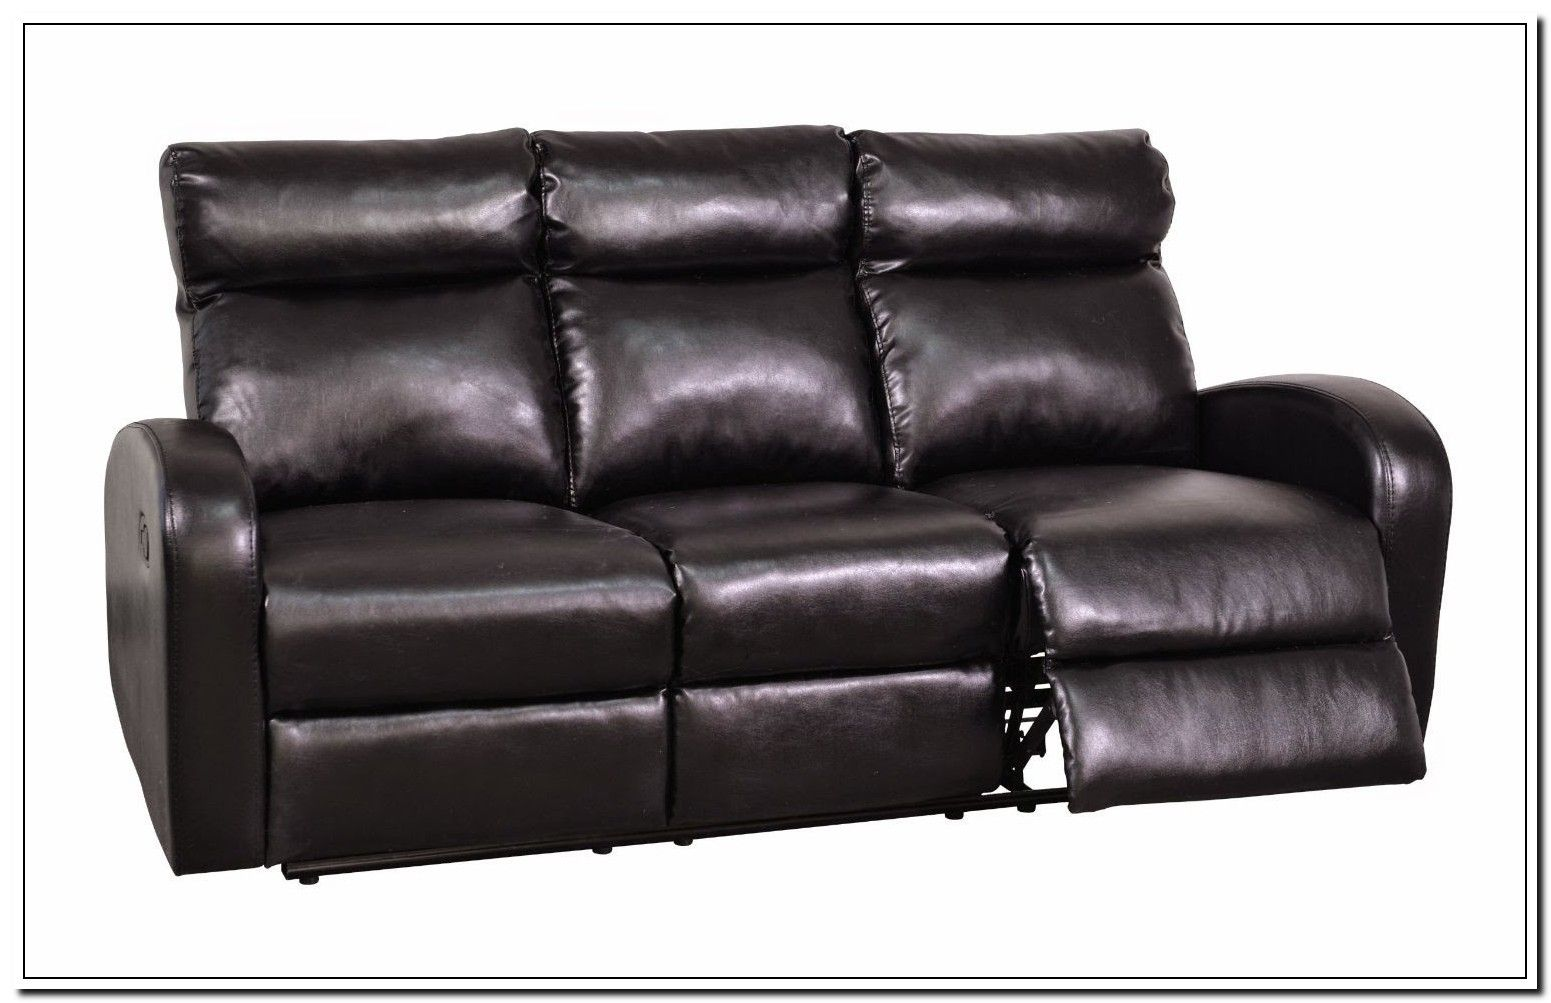 118 Reference Of Sofa Reclining Modern In 2020 Recliner Couch Modern Couch Reclining Sofa